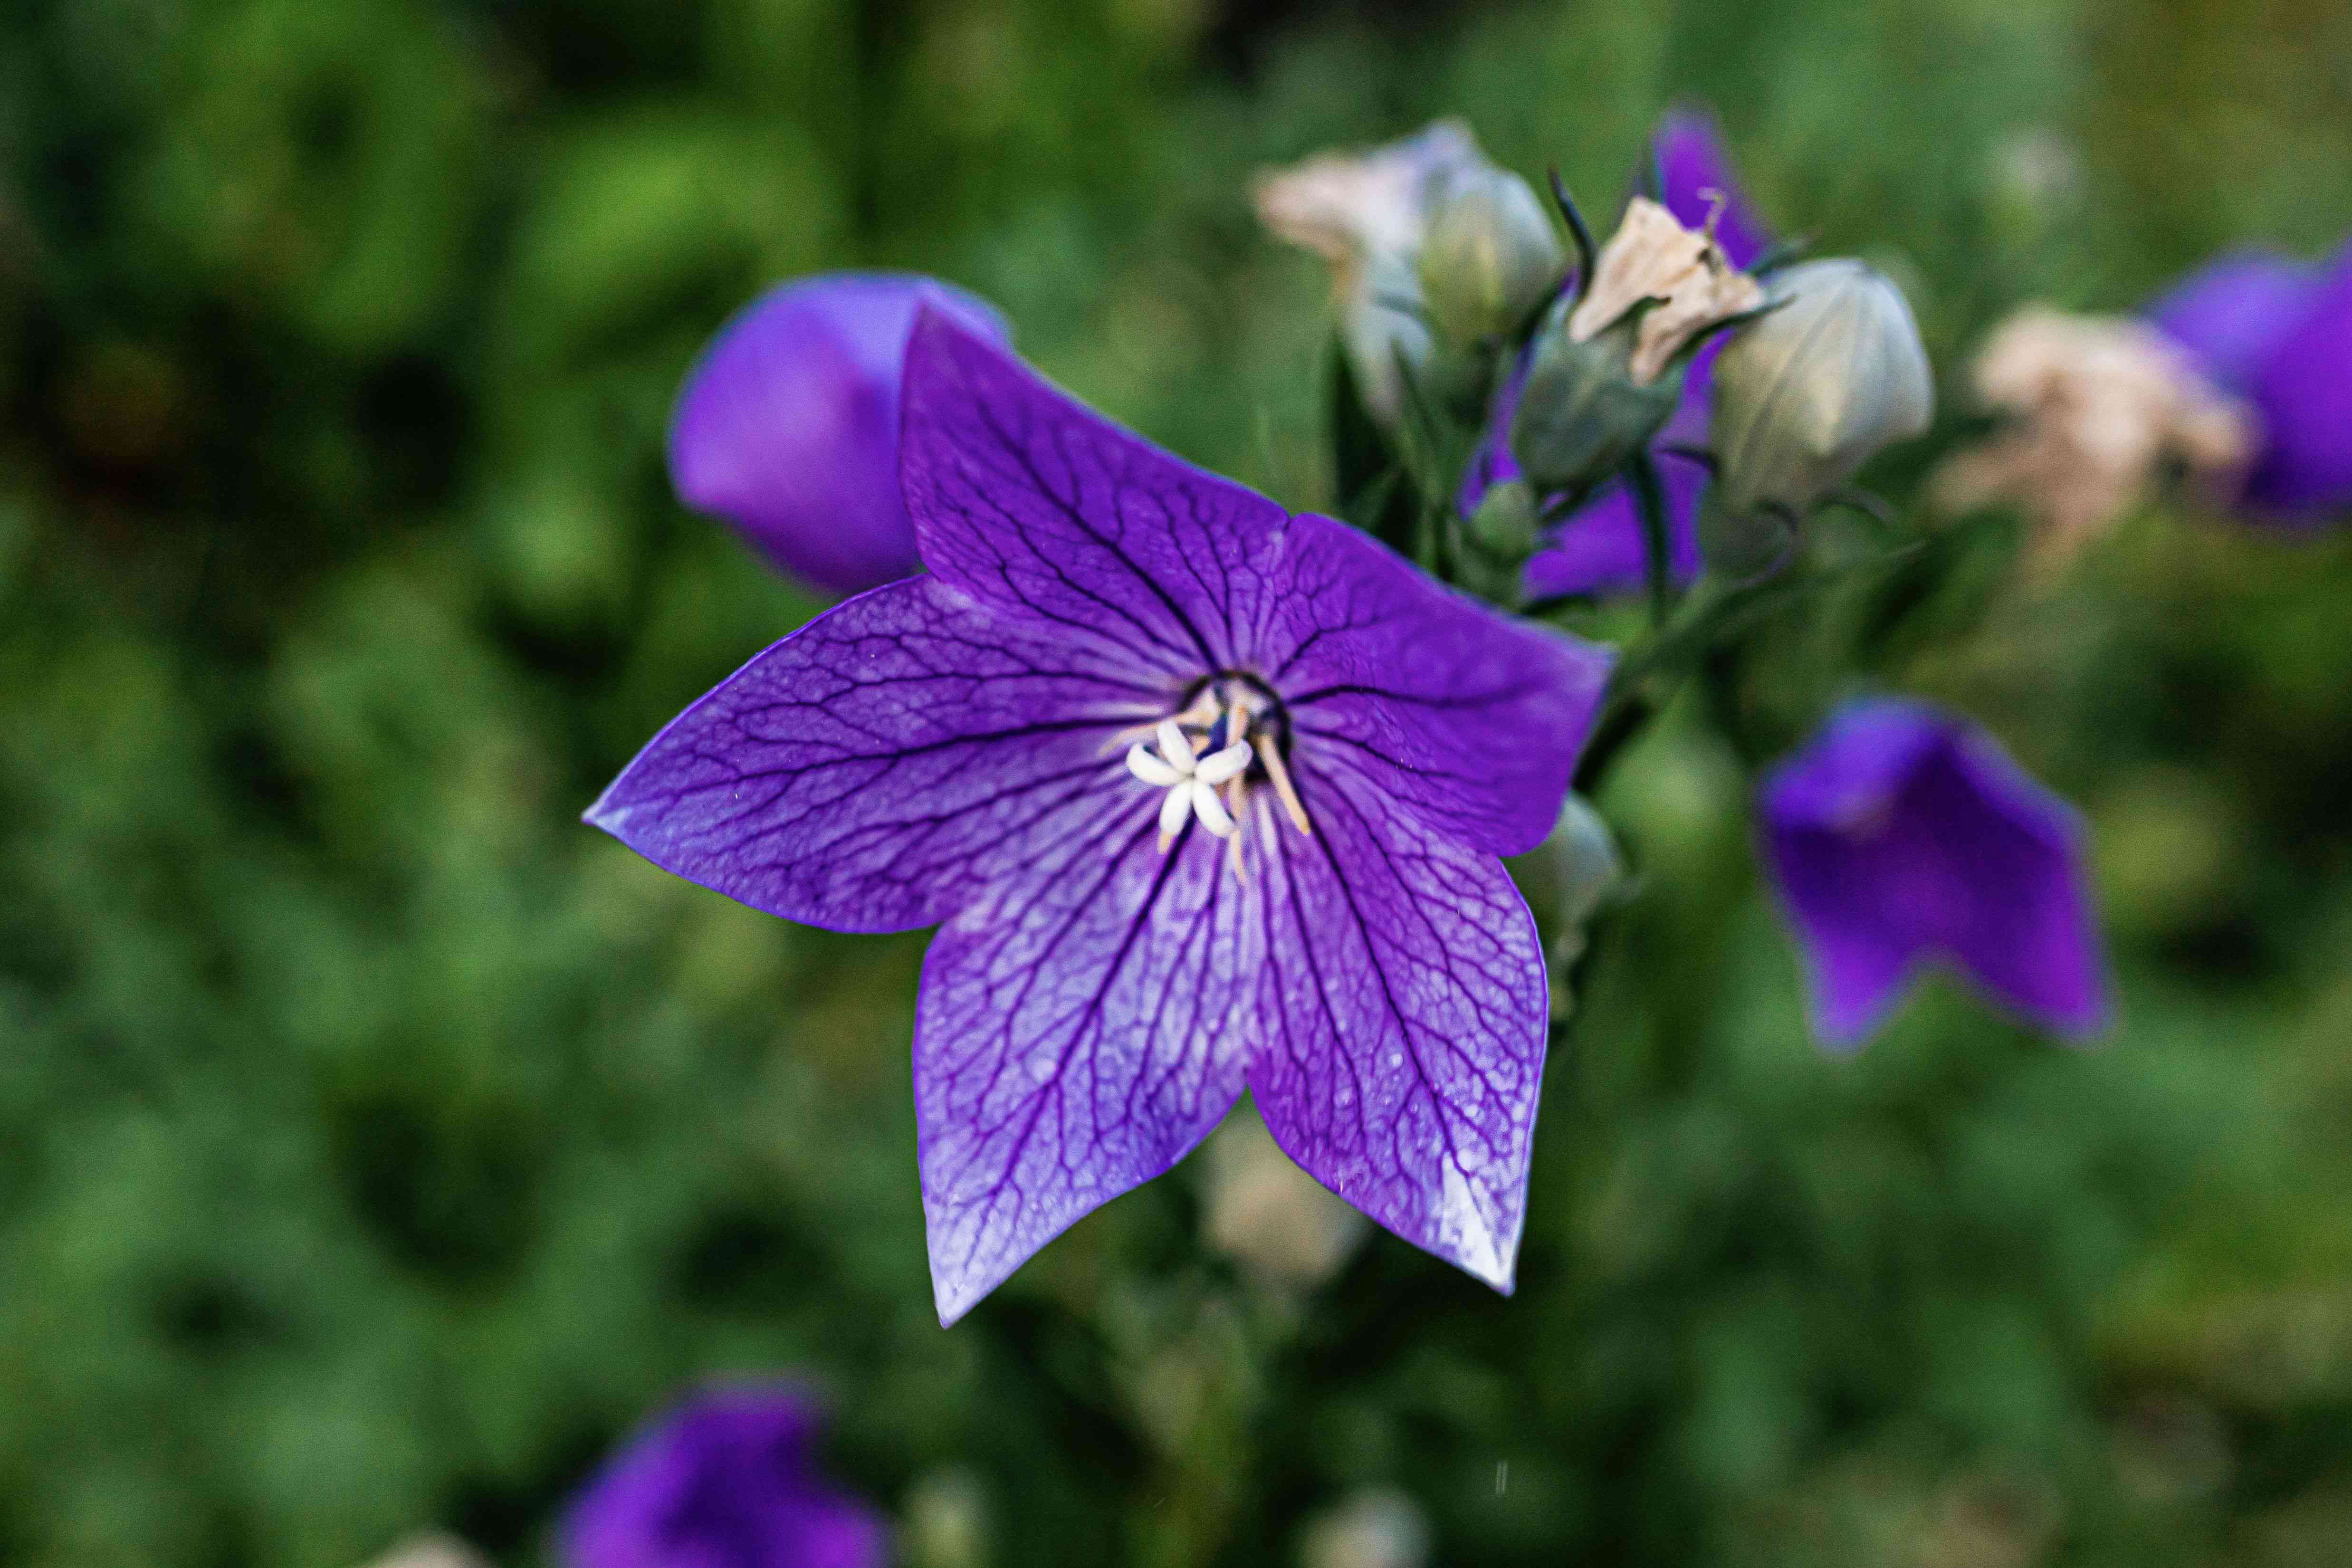 Balloon flower with deep purple colored and star-shaped petals in garden closeup